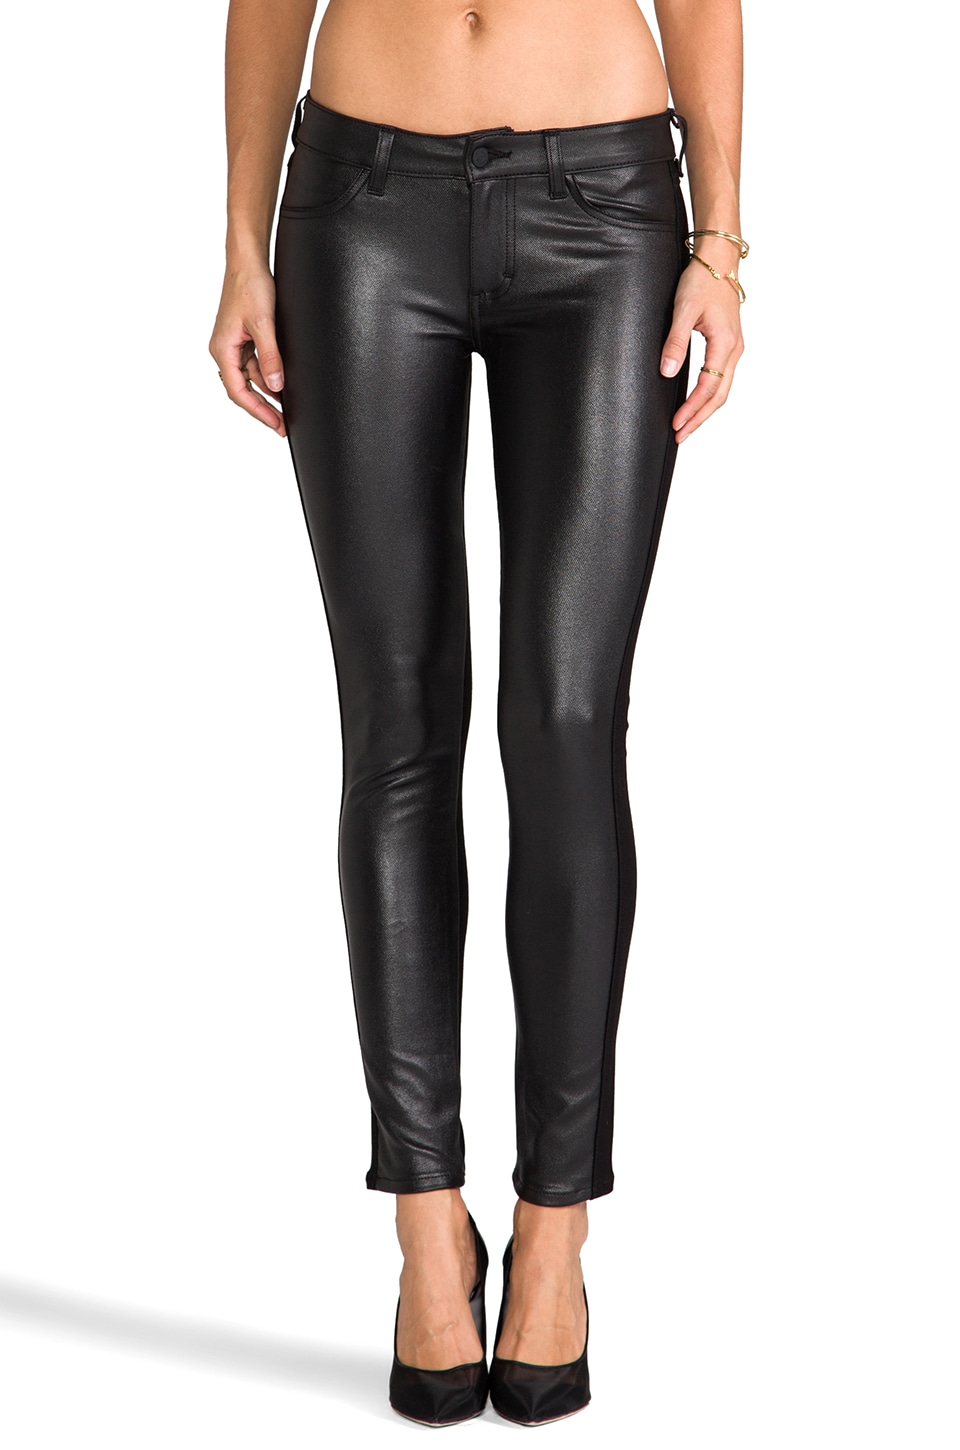 Siwy Hannah Pant in Right or Wrong